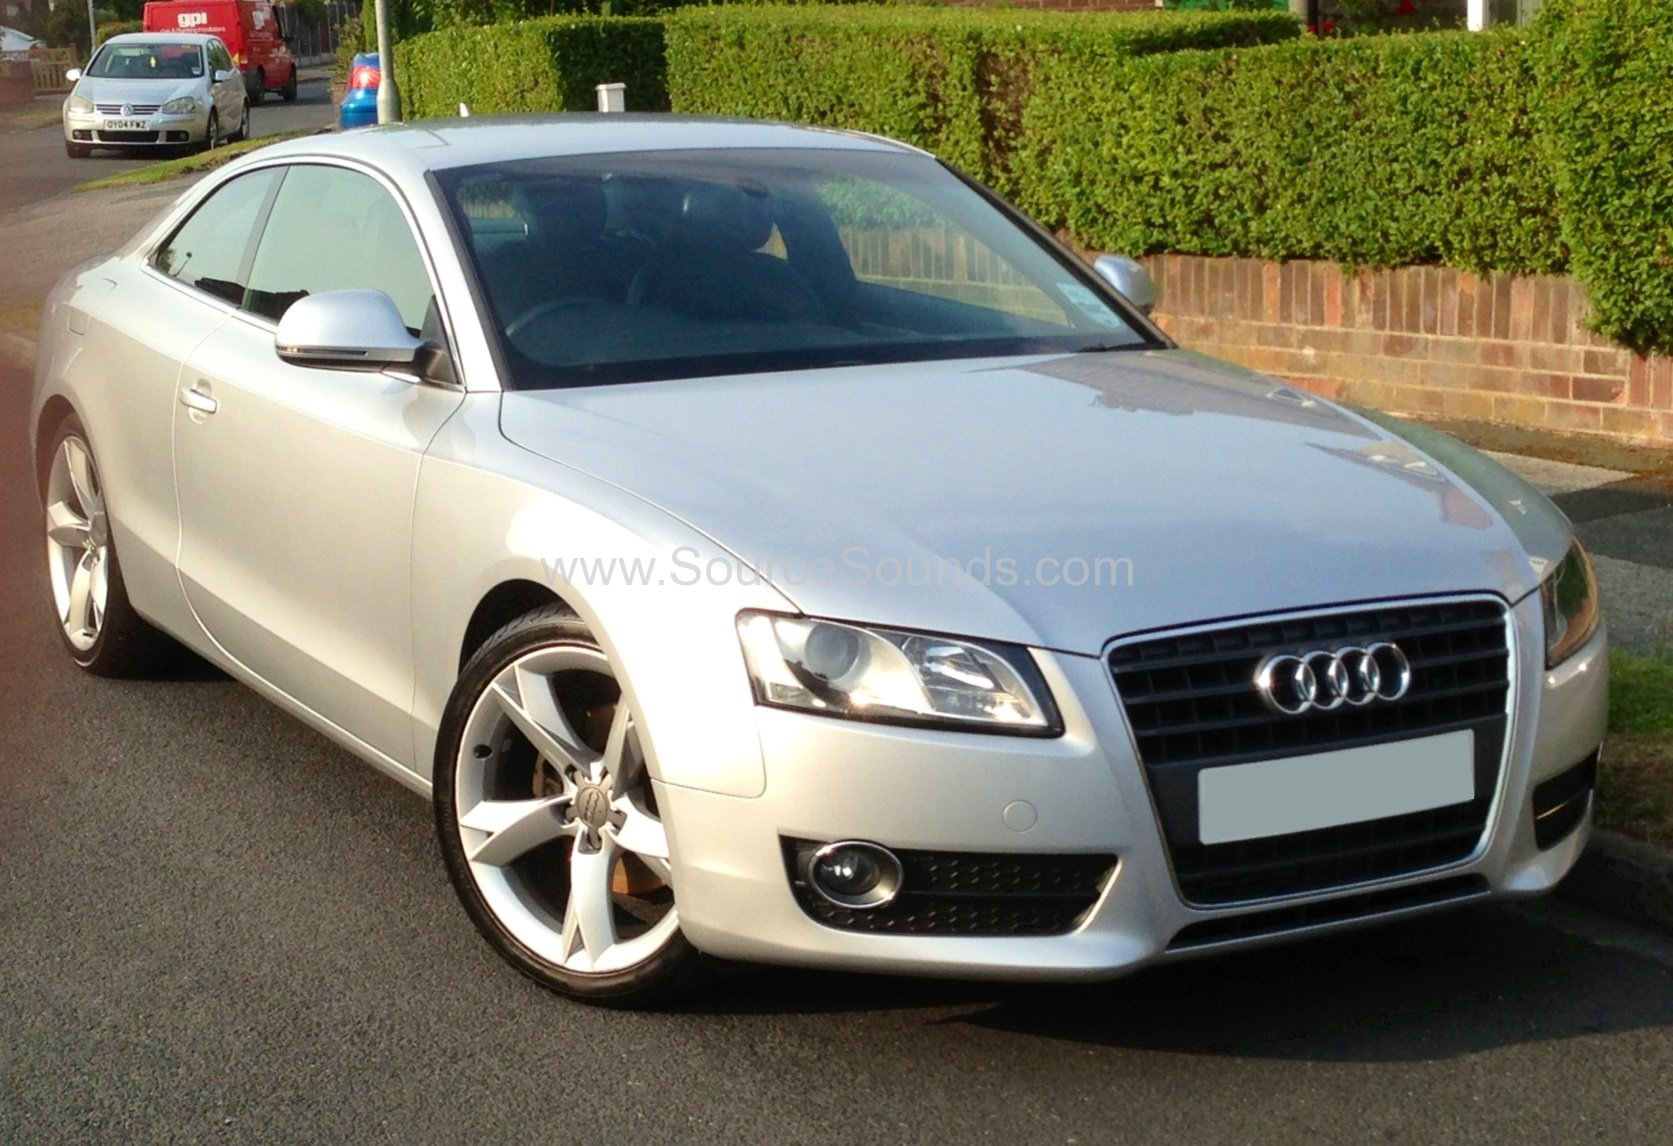 Audi A5 2008 dvd upgrade 001.jpeg